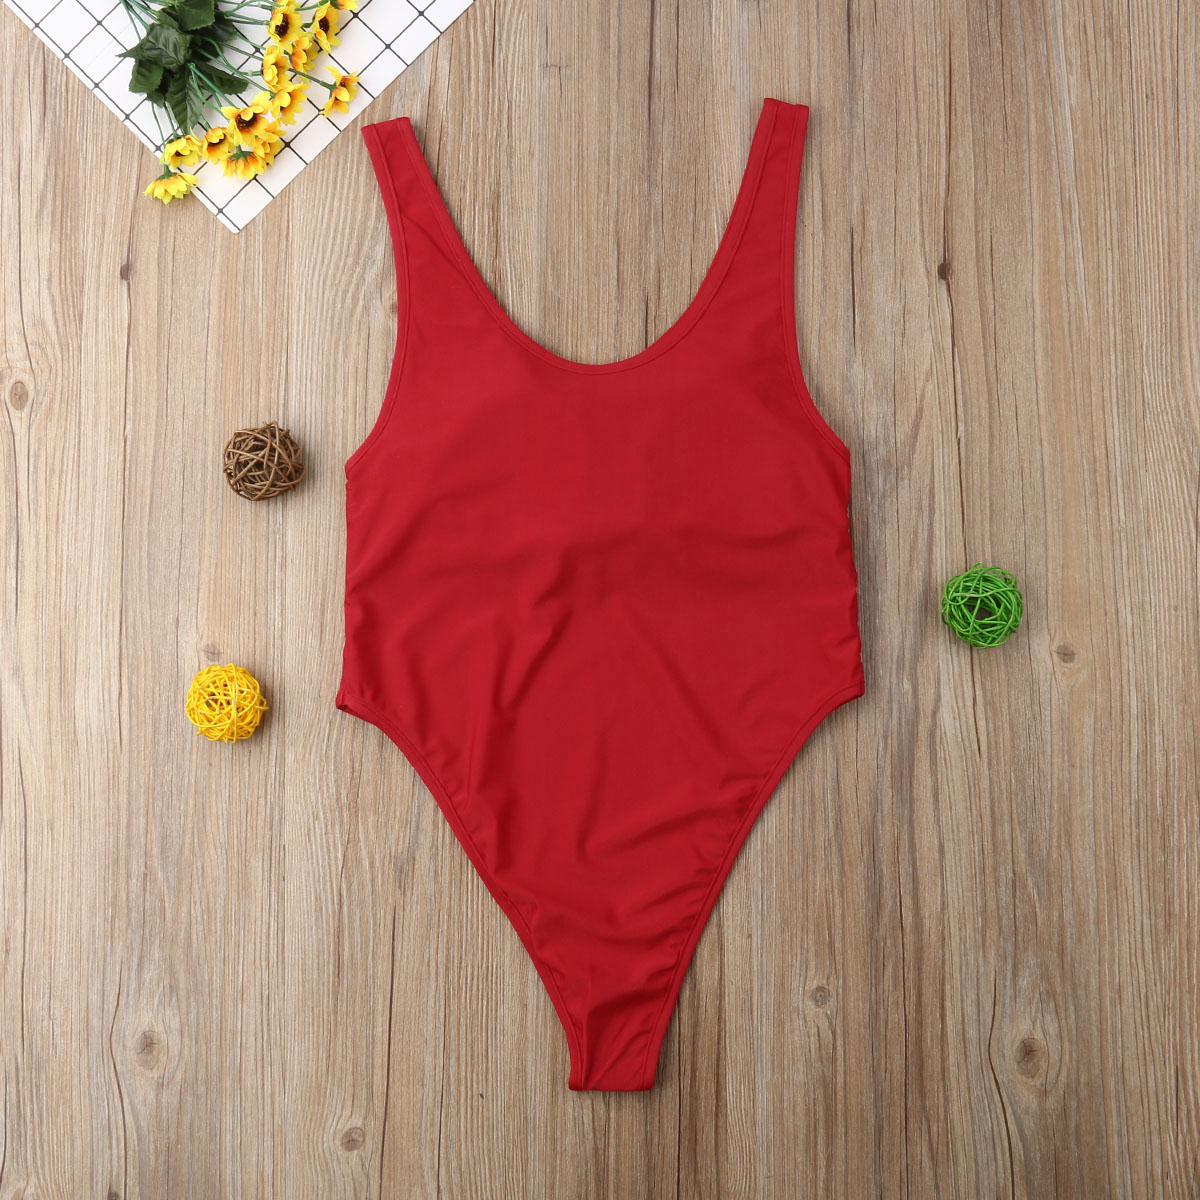 7ab5221a373 CHRONSTYLE - Mommy and Me One-Piece Matching Bathing Suit Queen Princess  Letter Print Monokini Swimsuit - Walmart.com